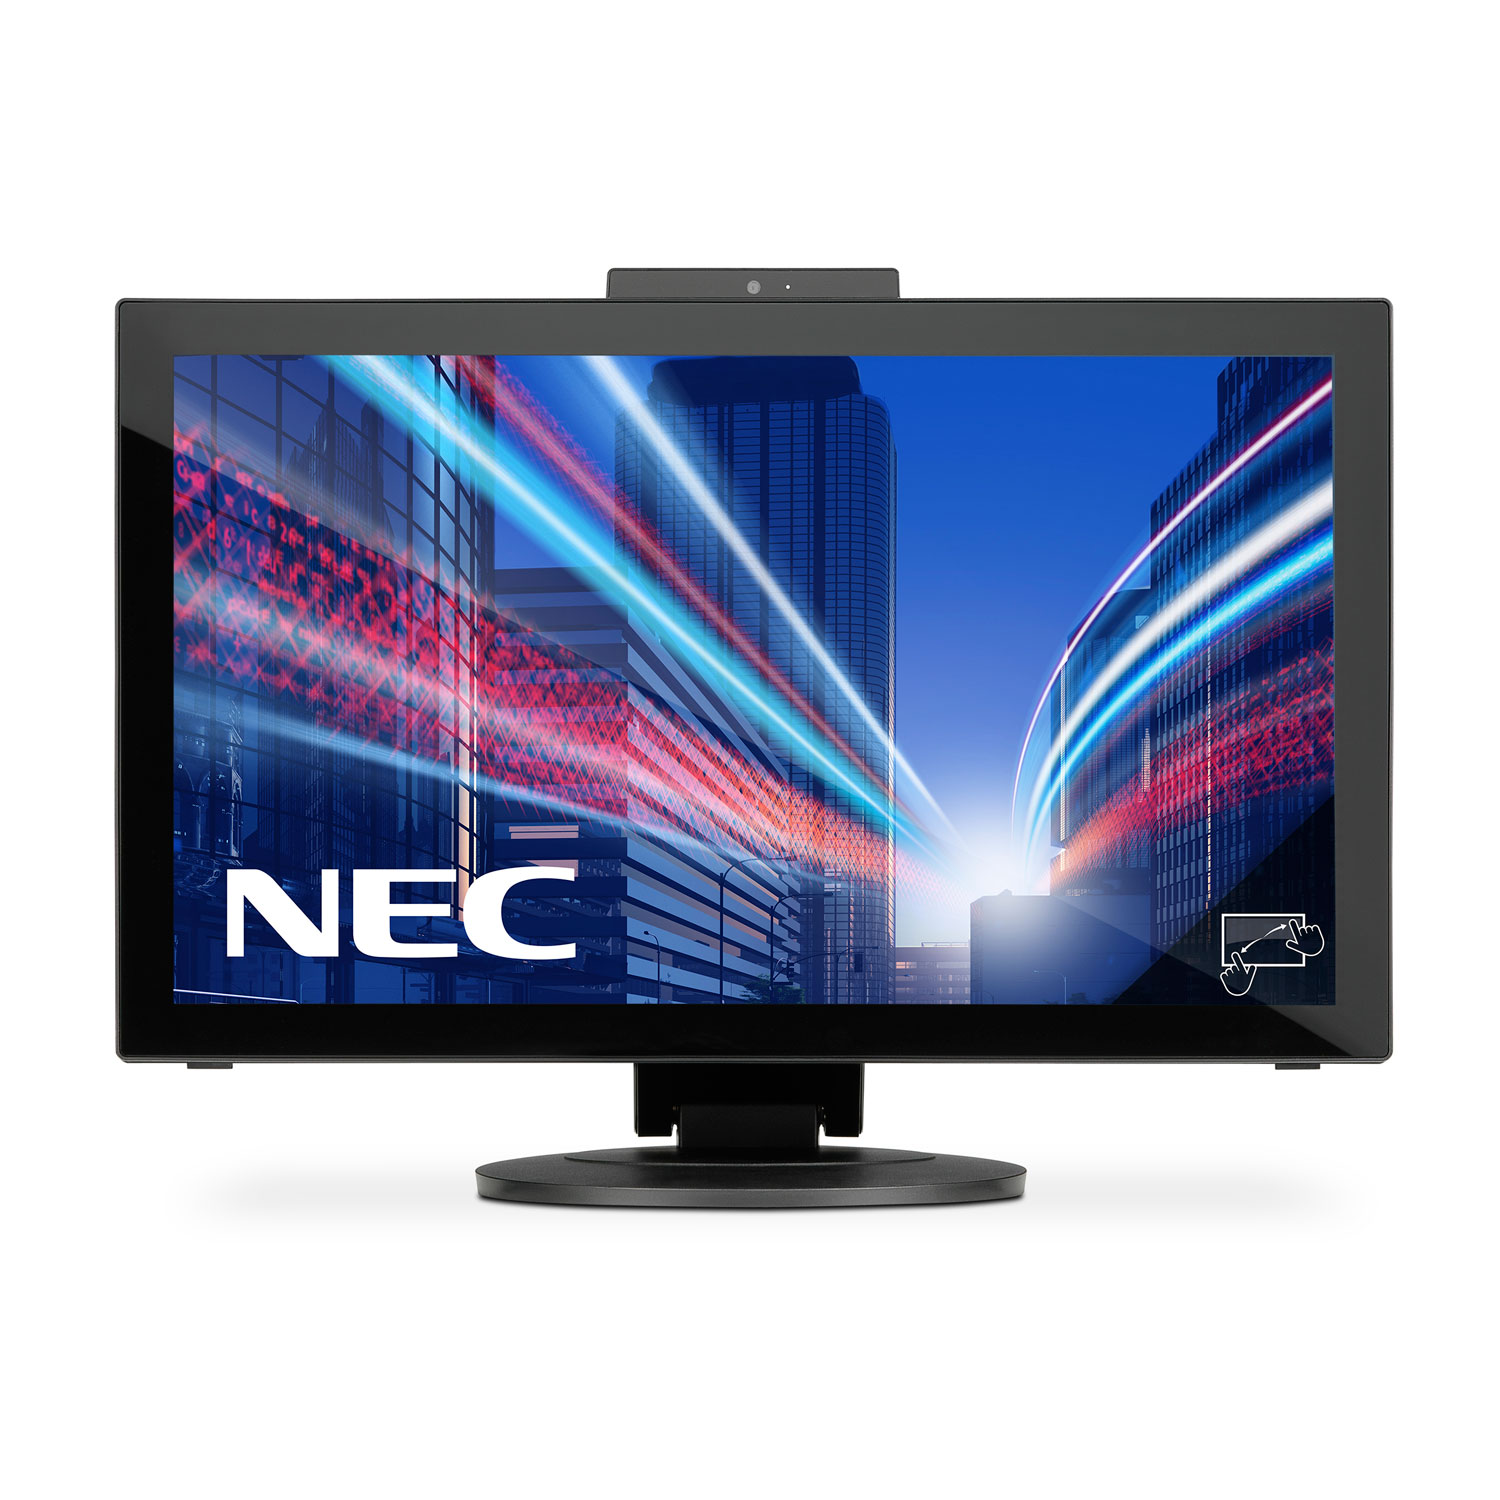 Nec 23 led multisync e232wmt multitouch ecran pc for Ecran photo nec